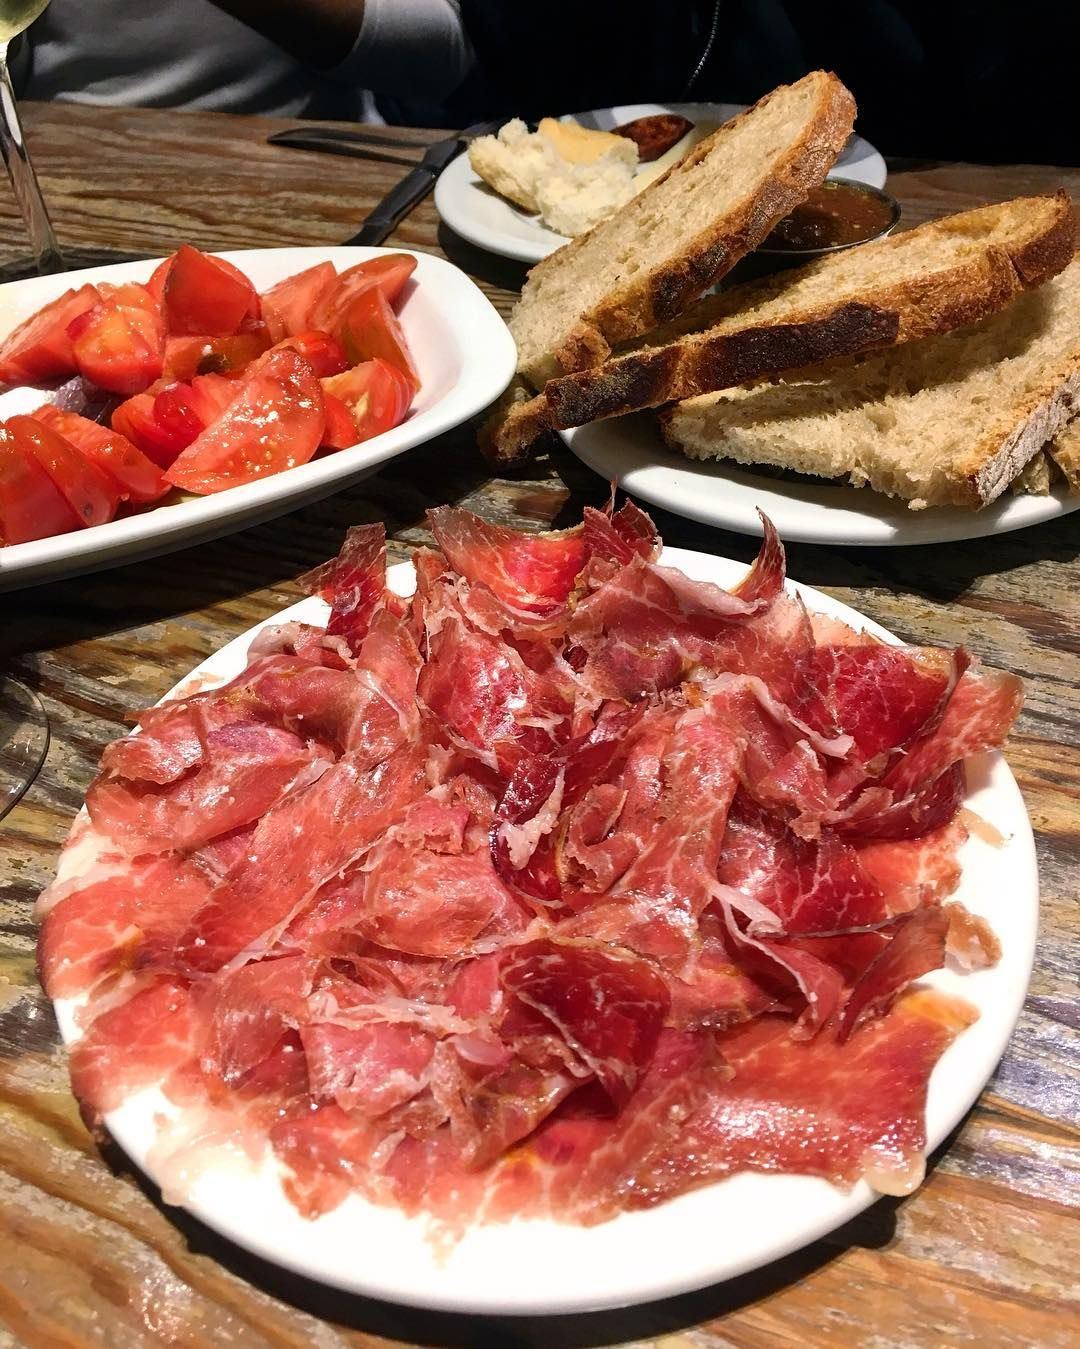 Adrienne Fung On Instagram Here For All The Jamon Iberico Food Jamon Gastronomy